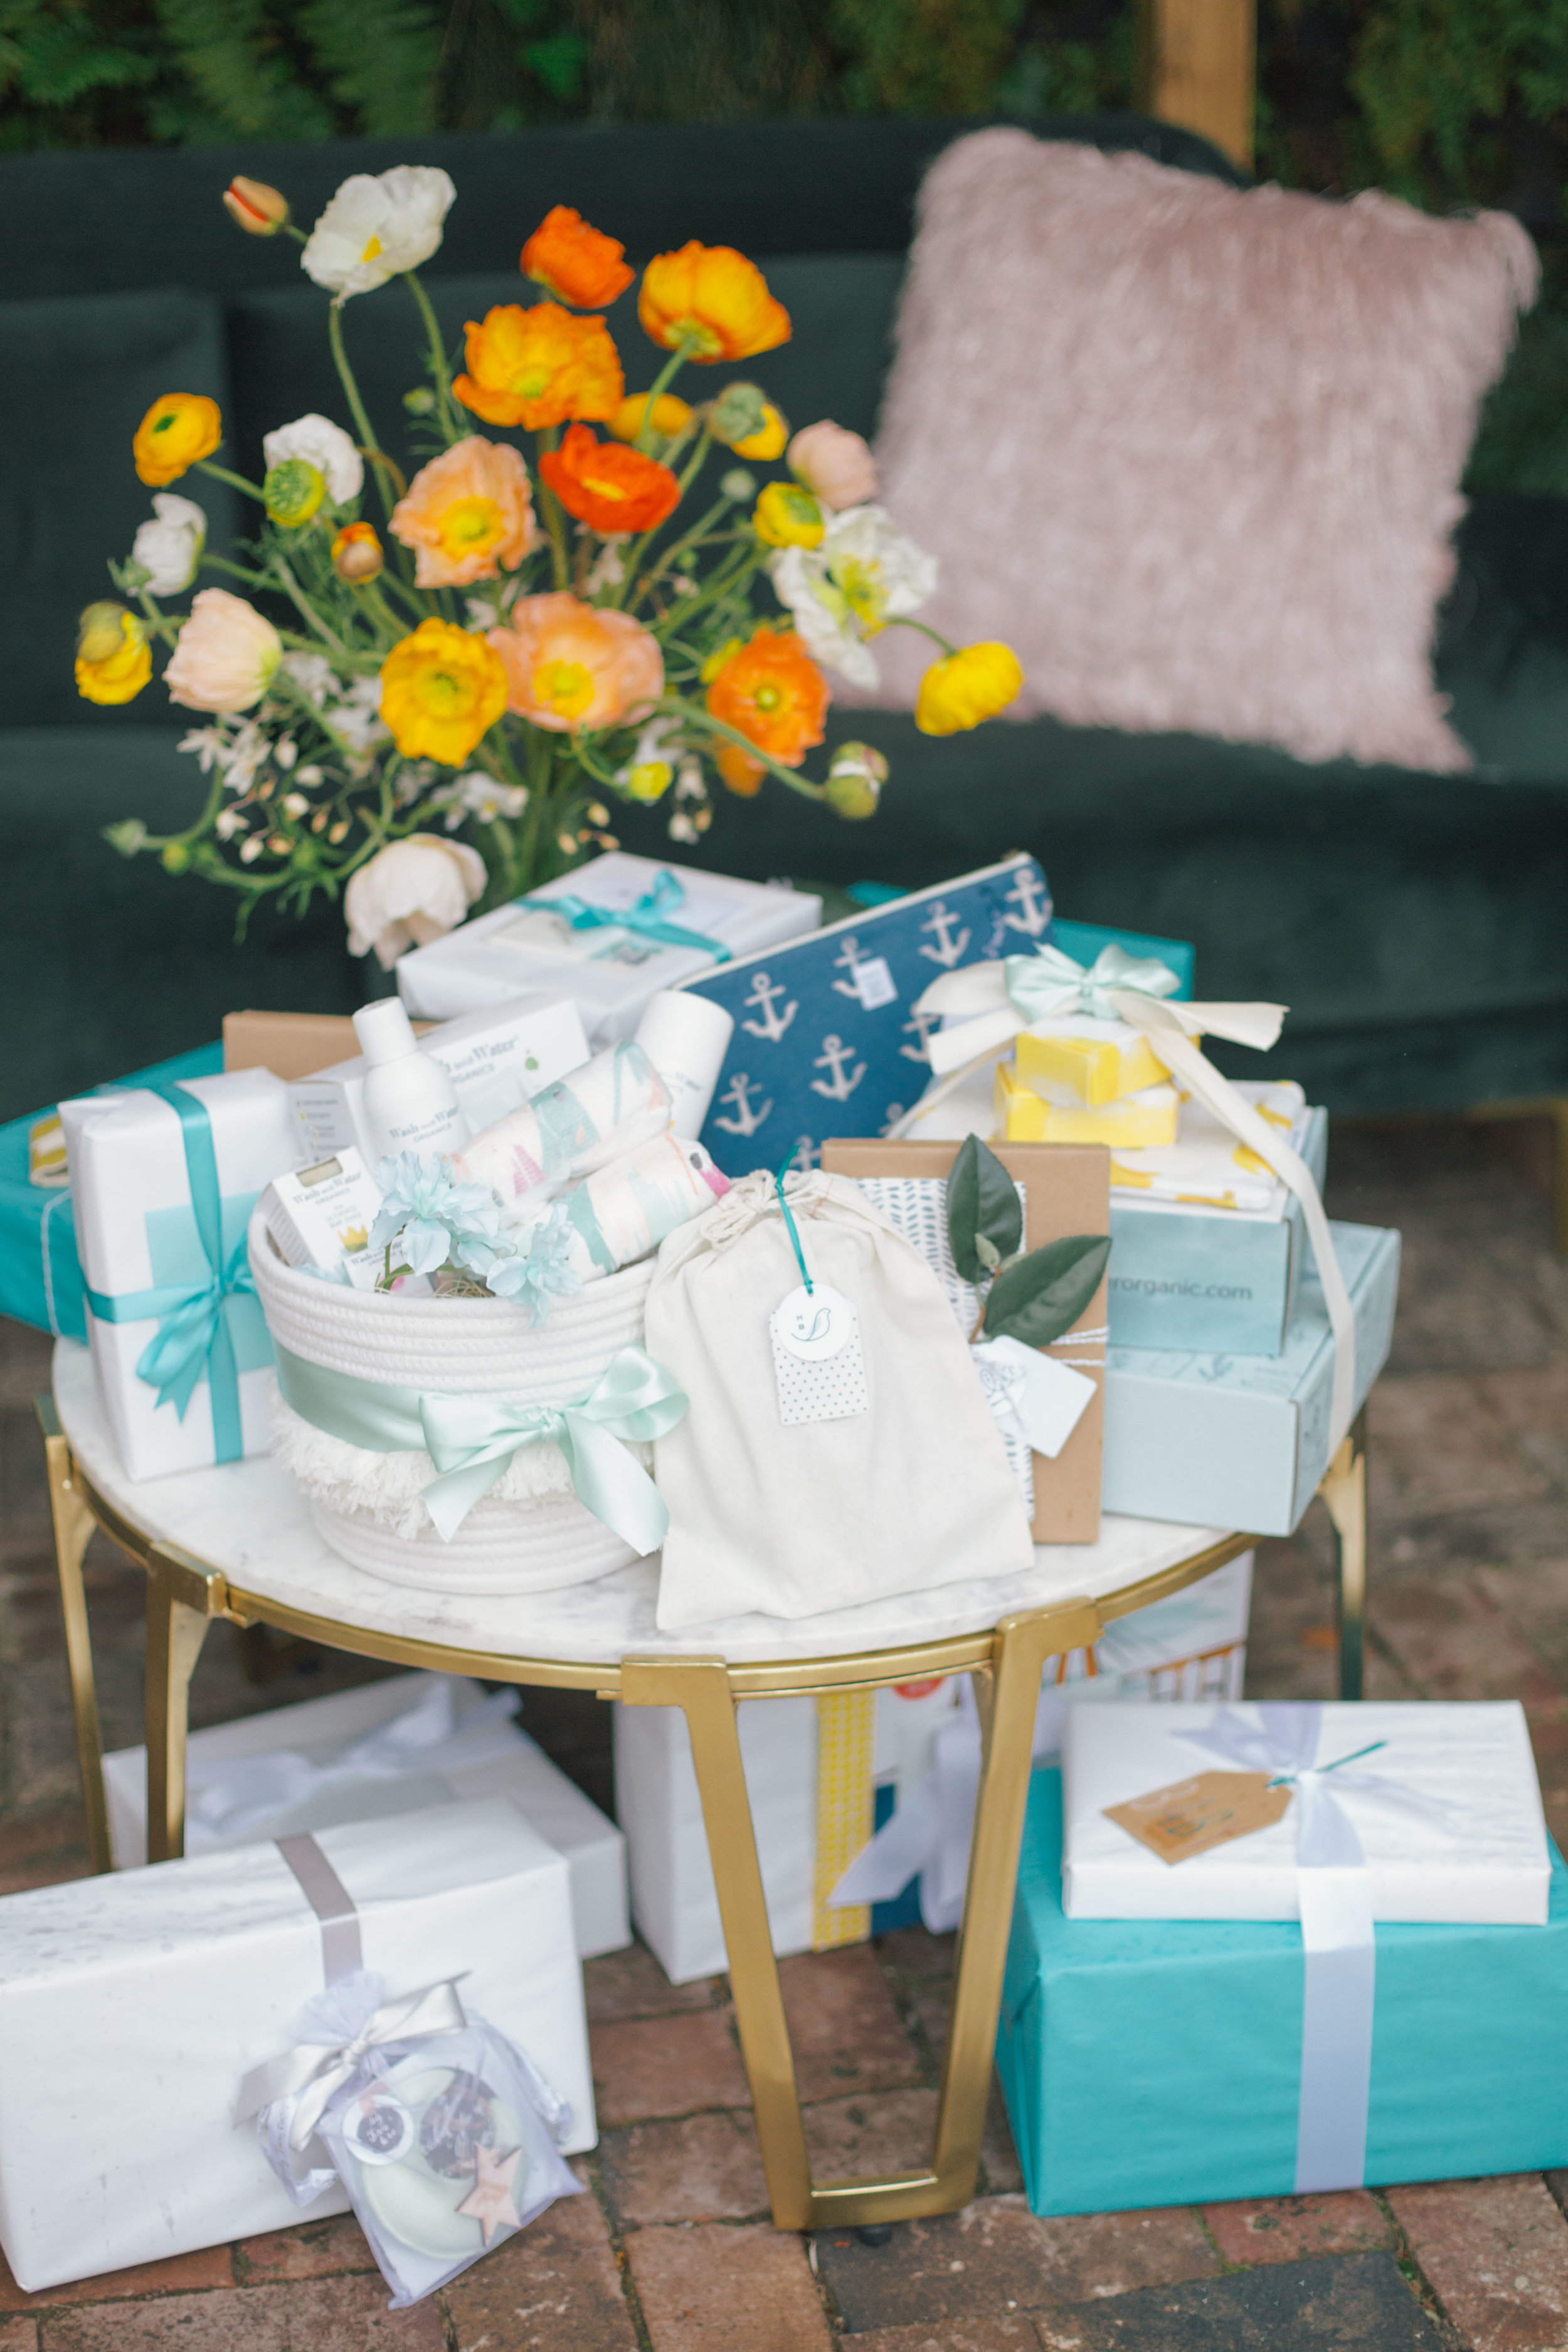 CannonGreen-BabyShower-GIFTS-17.jpg